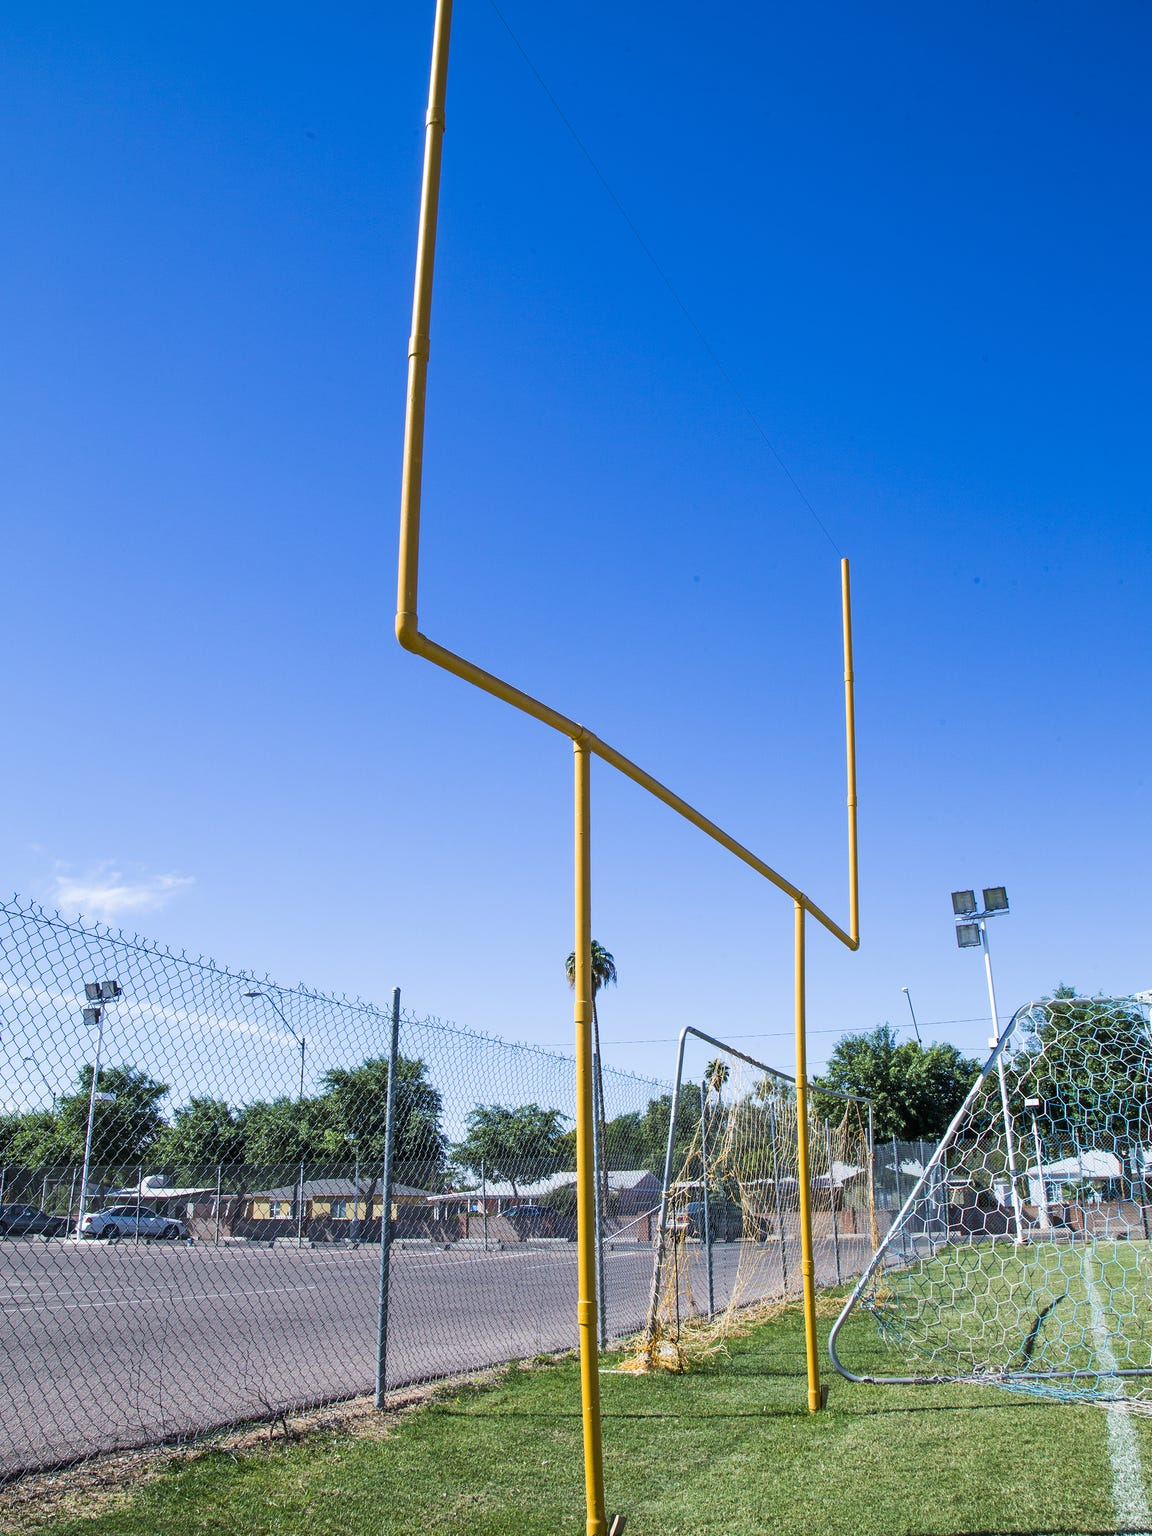 The Phoenix College football practice field has a goal